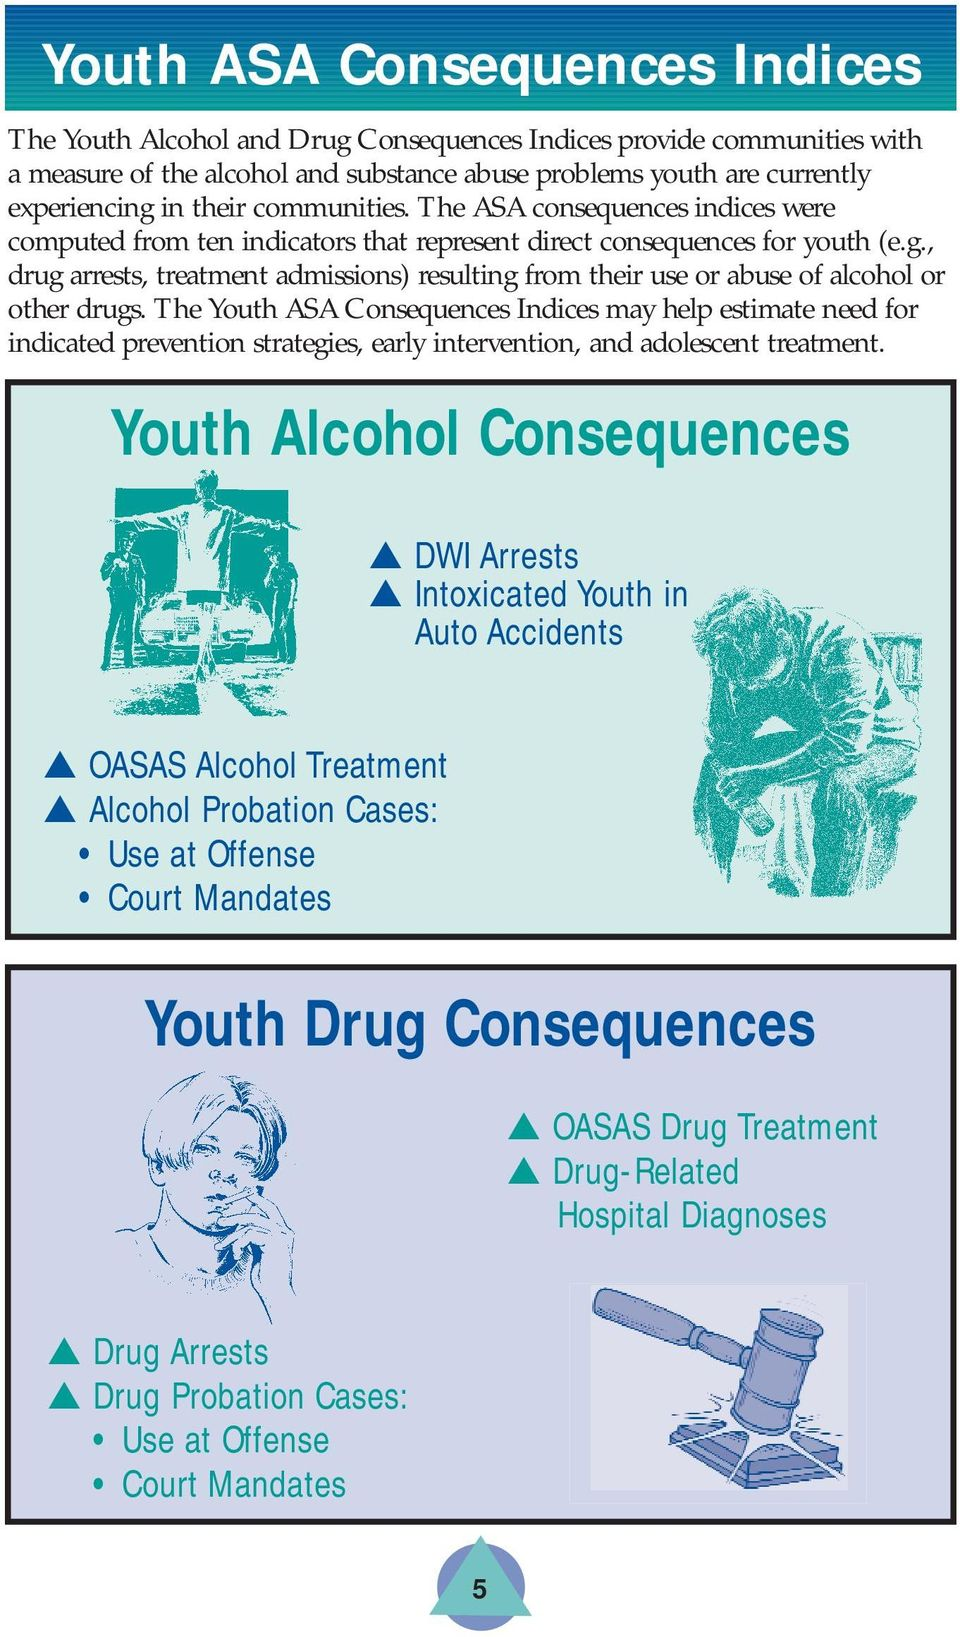 , drug arrests, treatment admissions) resulting from their use or abuse of alcohol or other drugs.